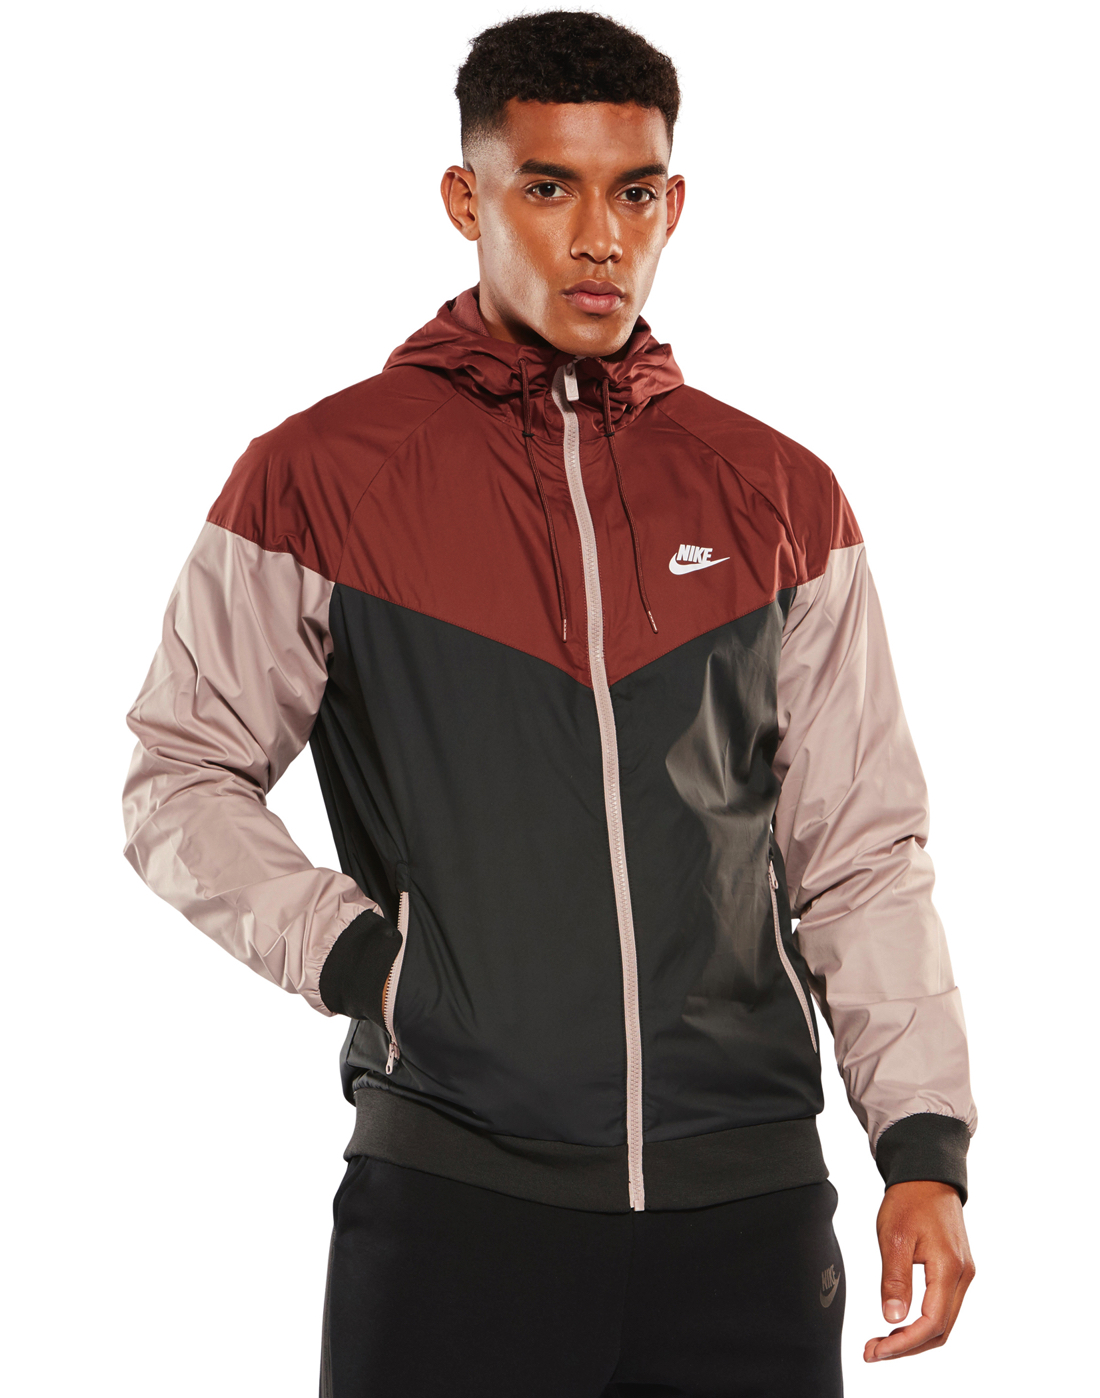 601ce9ddd1 Men s Black   Burgundy Nike Windrunner Jacket